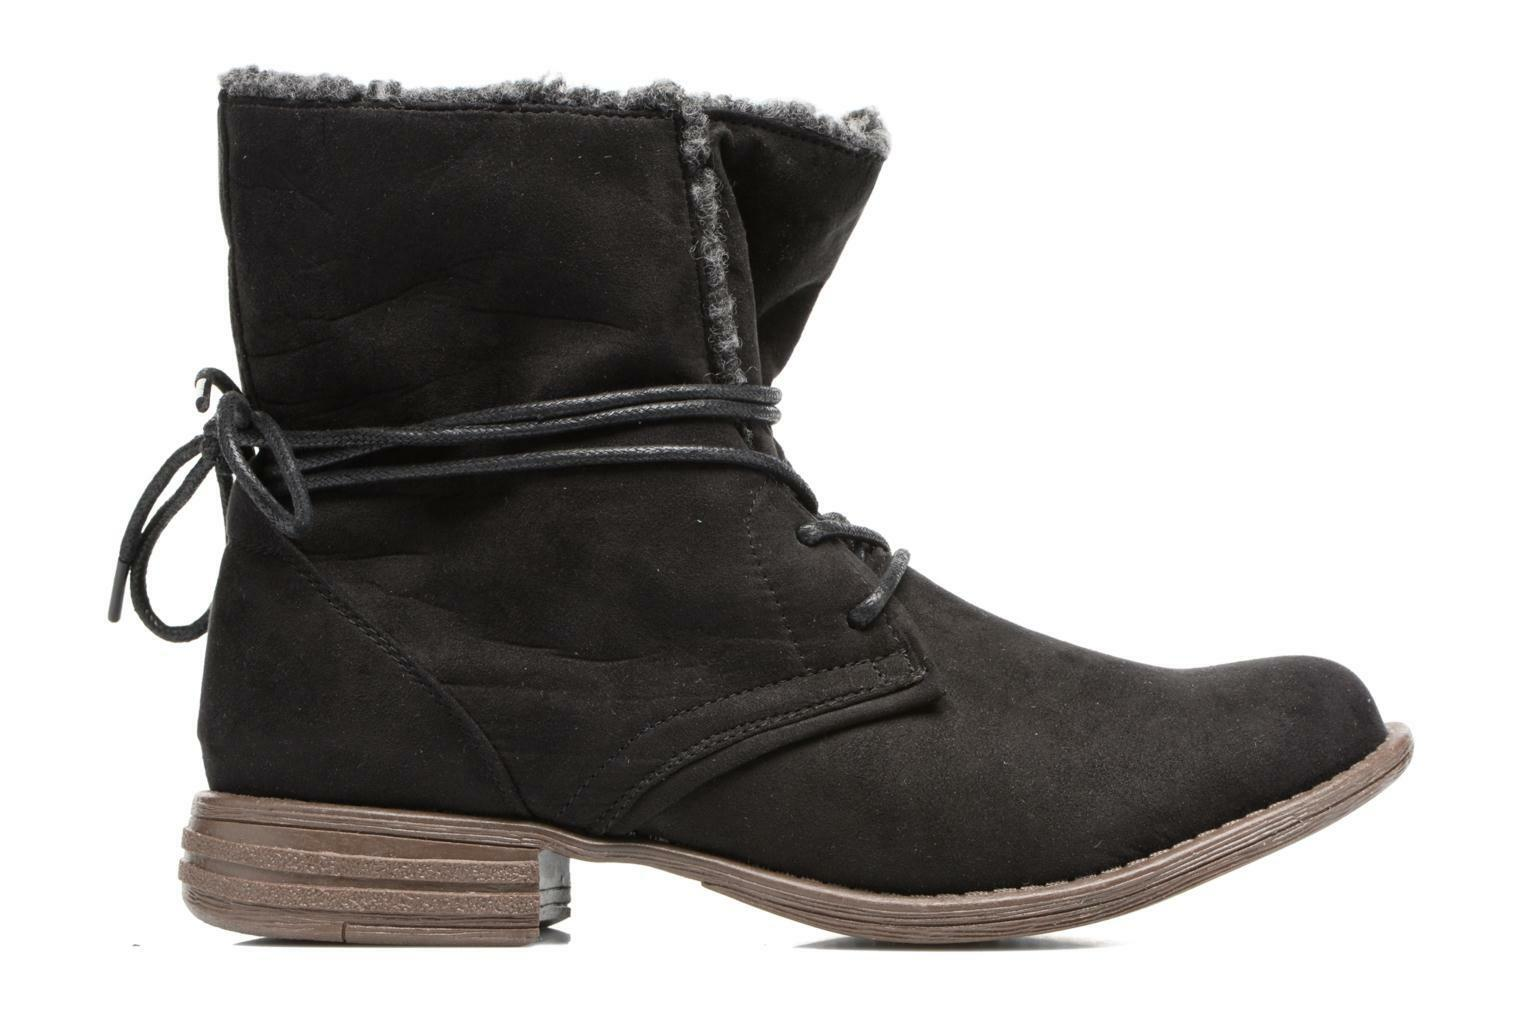 Mujer I Love Shoes Thableau Fourrée Botines Negro